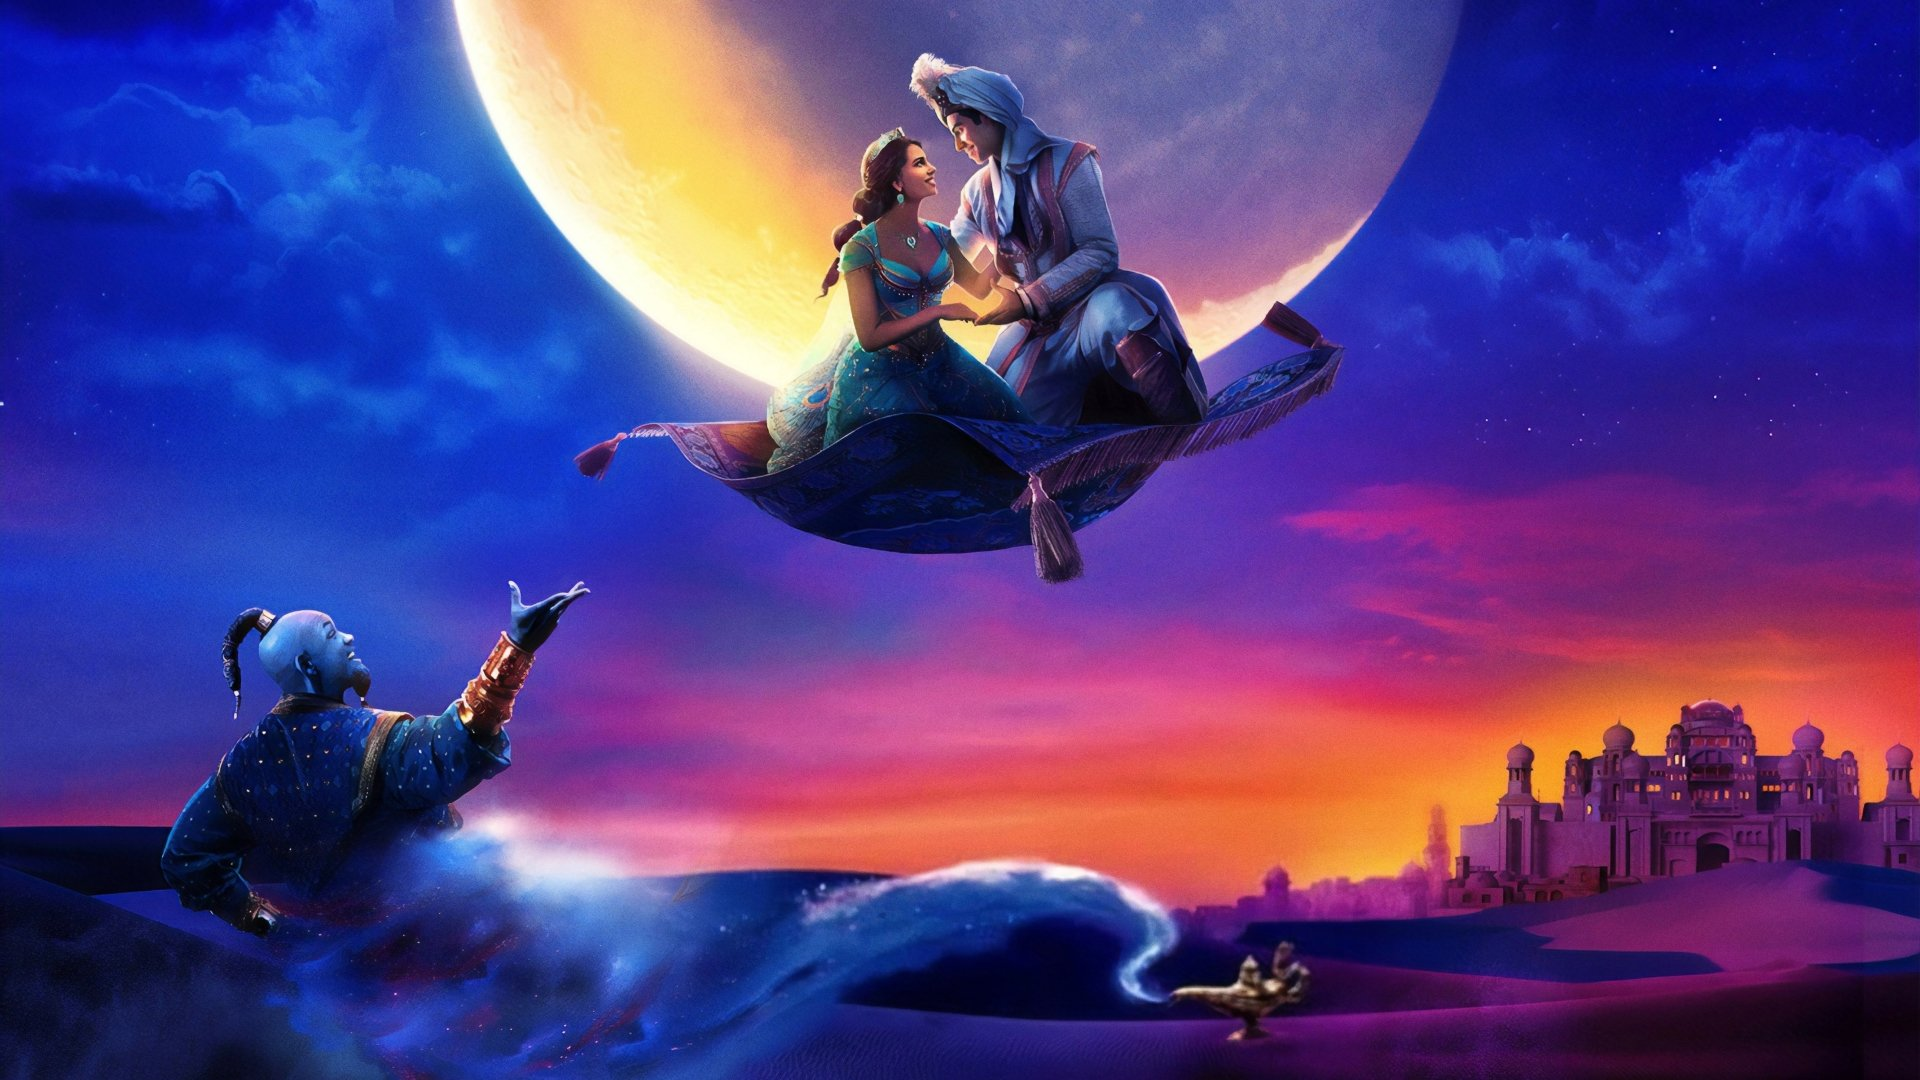 27 Aladdin 2019 Hd Wallpapers Background Images